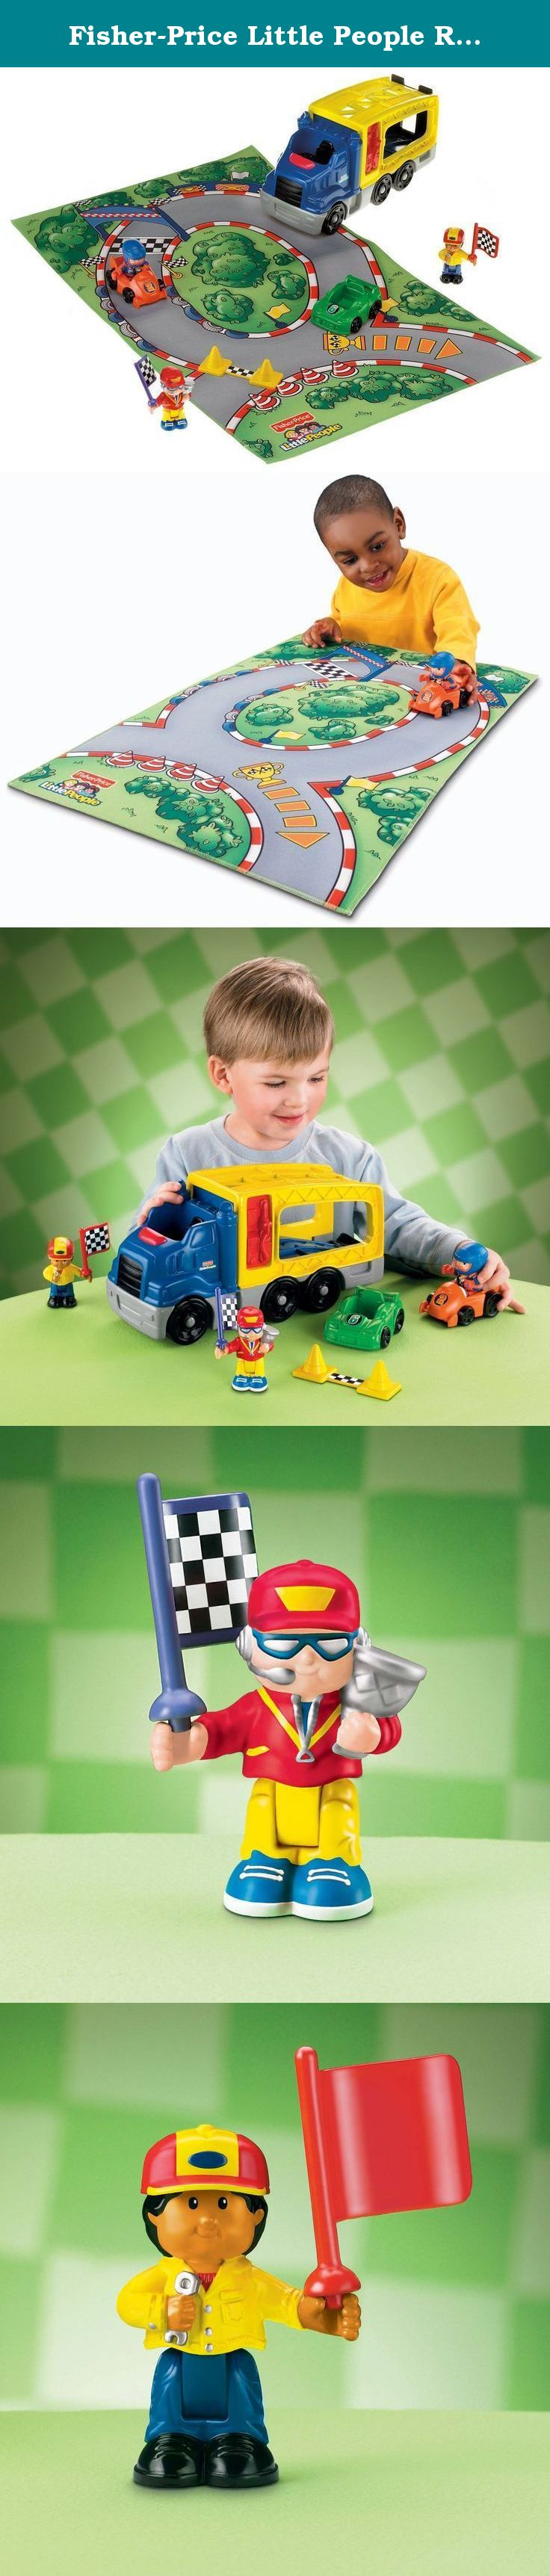 Little people car toys  FisherPrice Little People Race Car Carrier Play Set On your mark